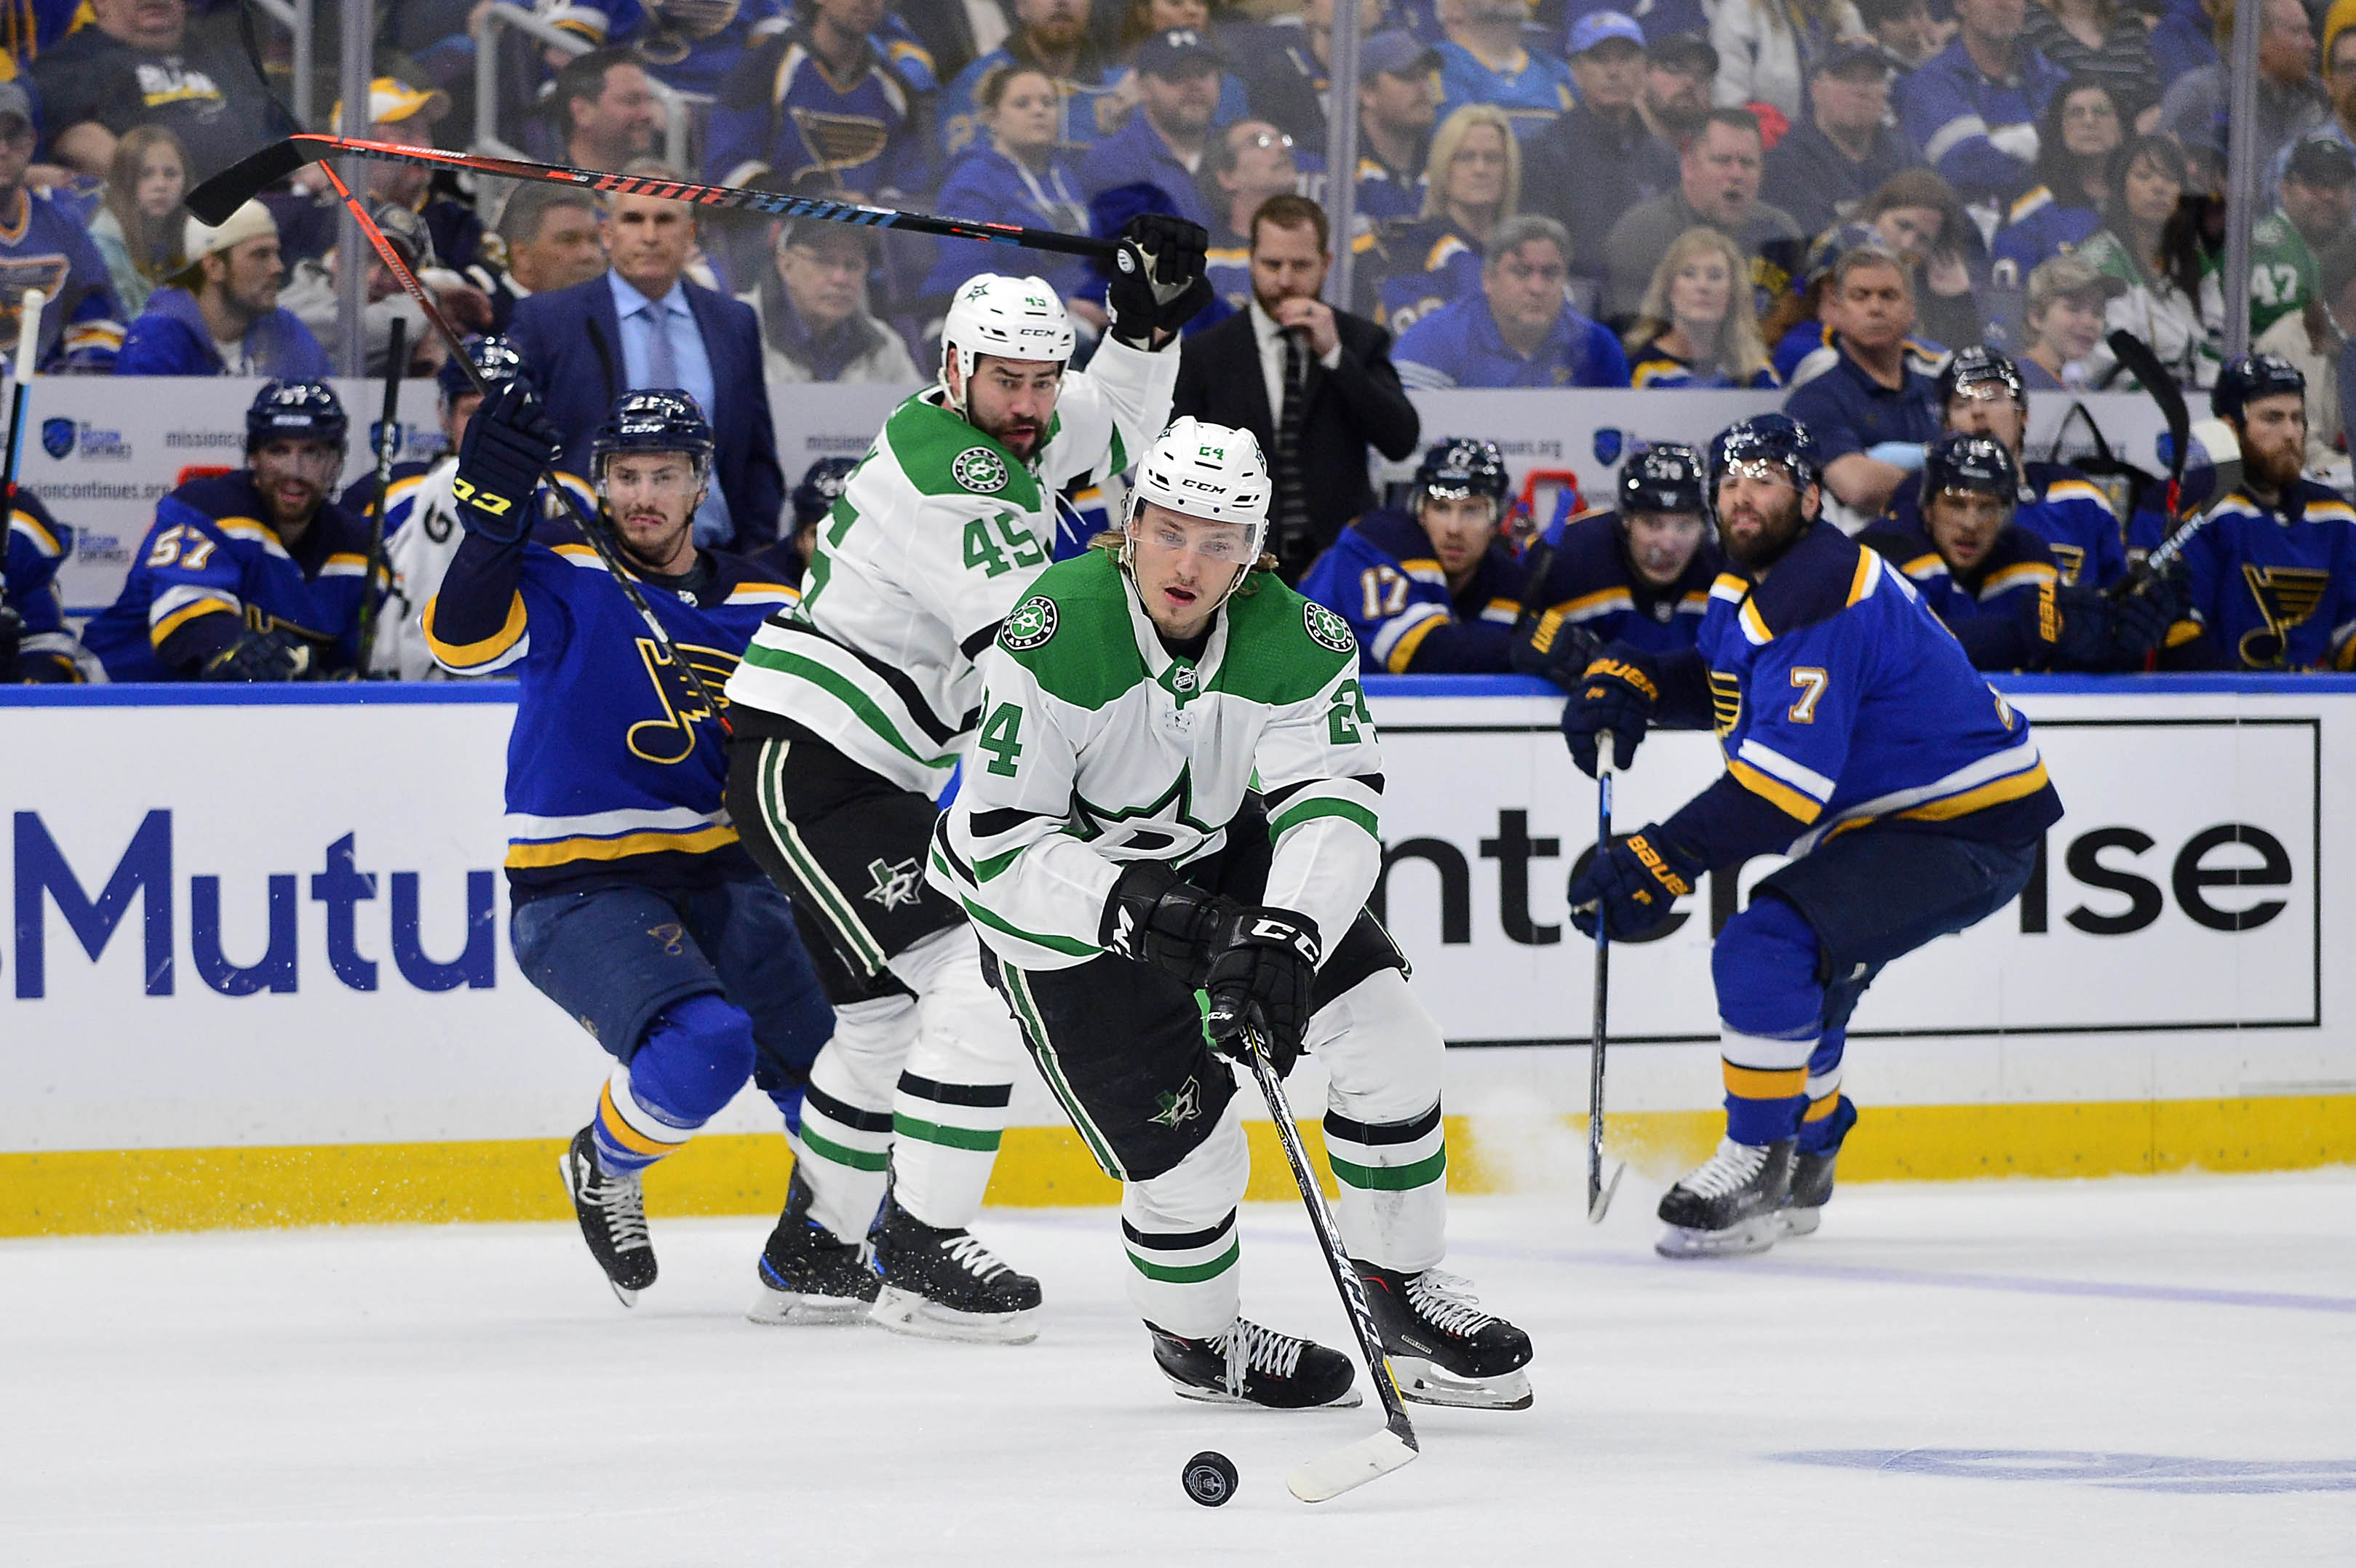 Apr 27, 2019; St. Louis, MO, USA; Dallas Stars left wing Roope Hintz (24) handles the puck during the first period in game two of the second round of the 2019 Stanley Cup Playoffs against the St. Louis Blues at Enterprise Center. Mandatory Credit: Jeff Cu